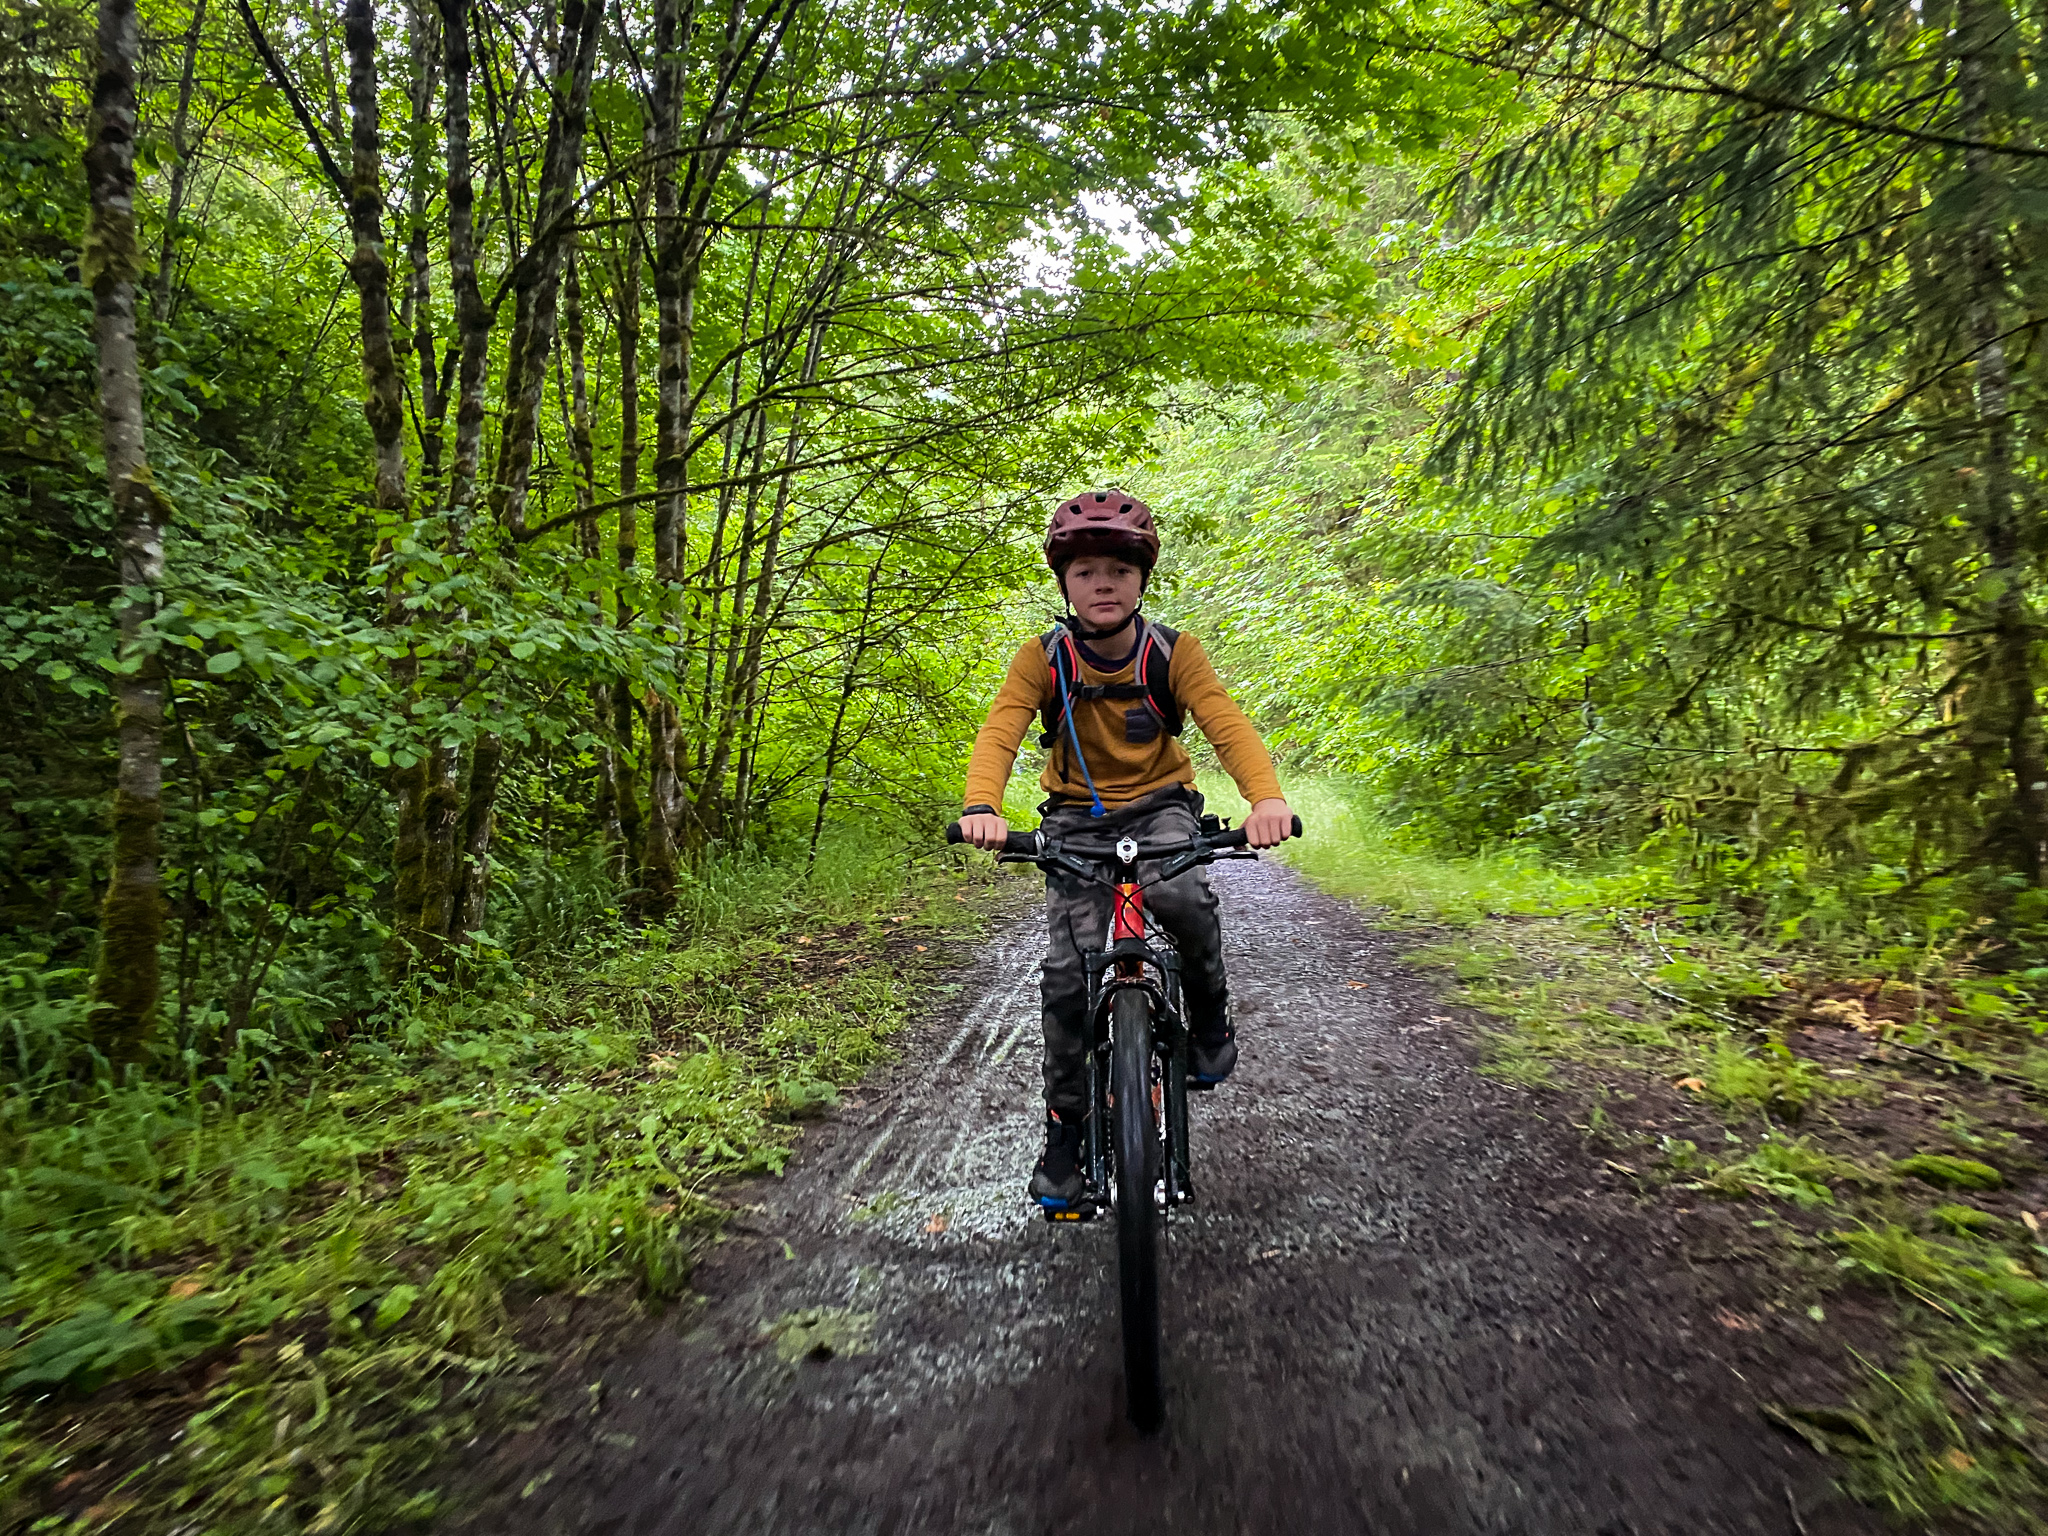 The Crown Zellerbach Trail Is Better Than Ever Especially For Families Bikeportland Org